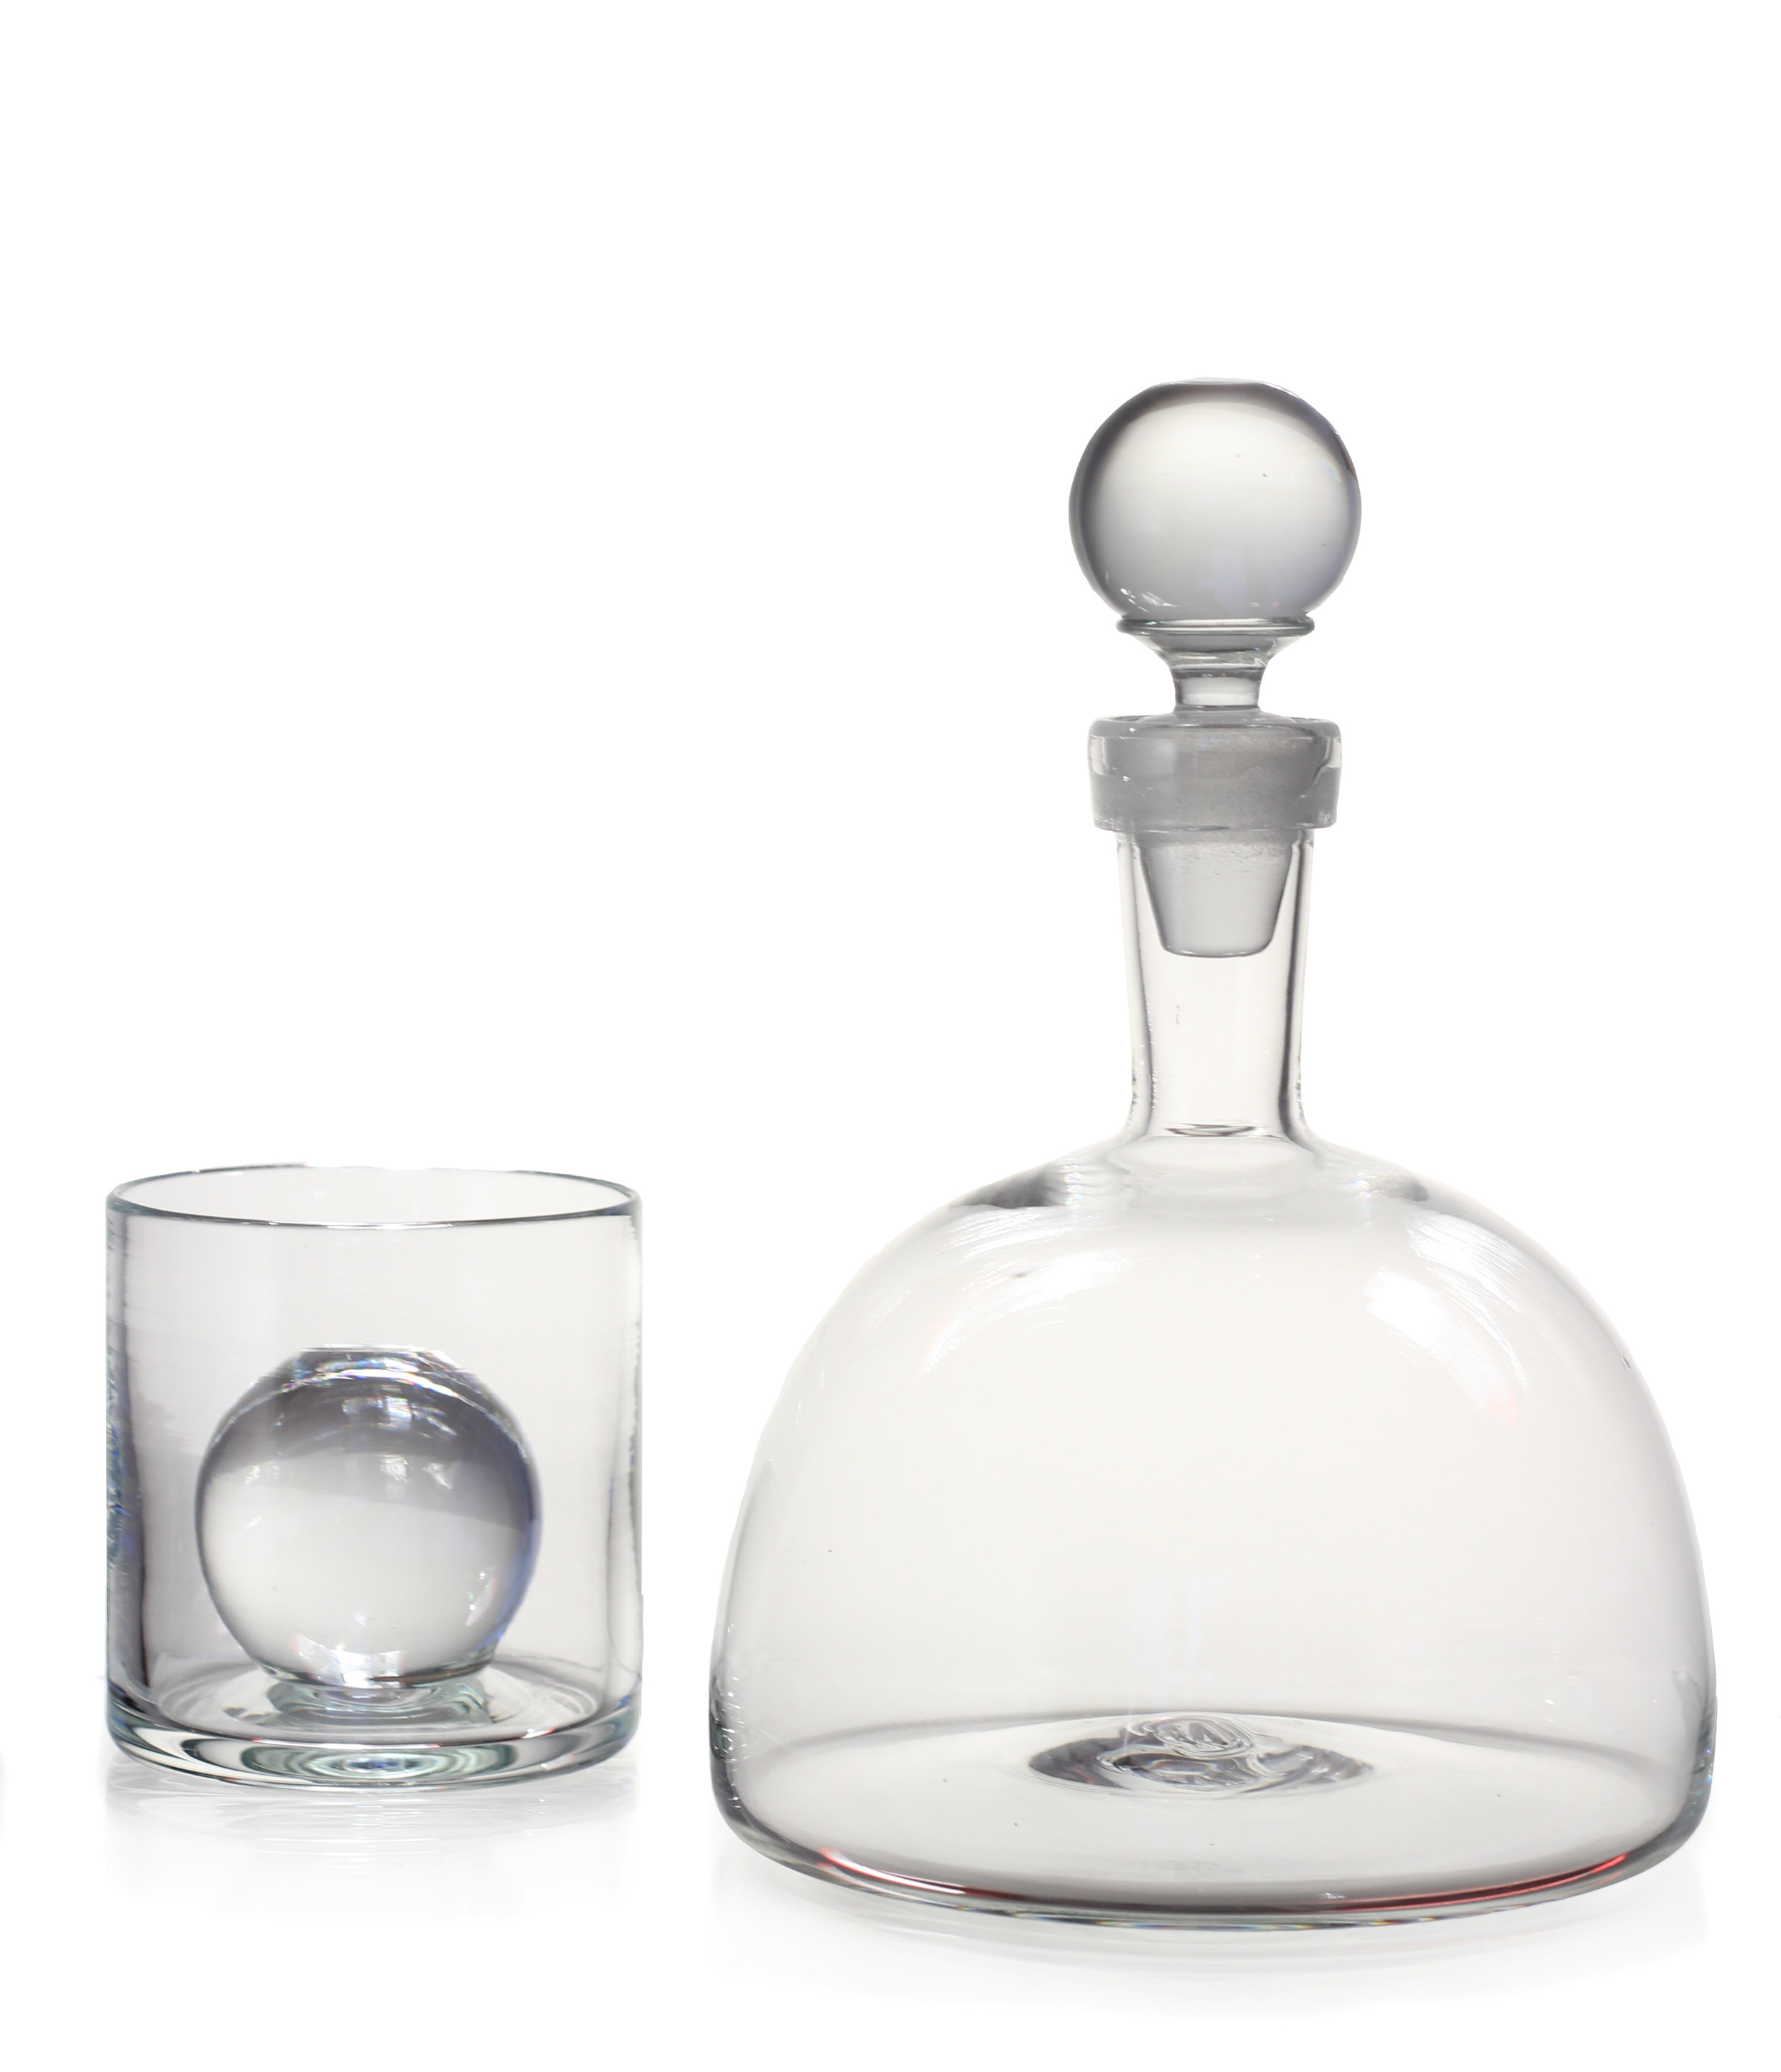 Sphere Cup and Low Decanter copy.JPG